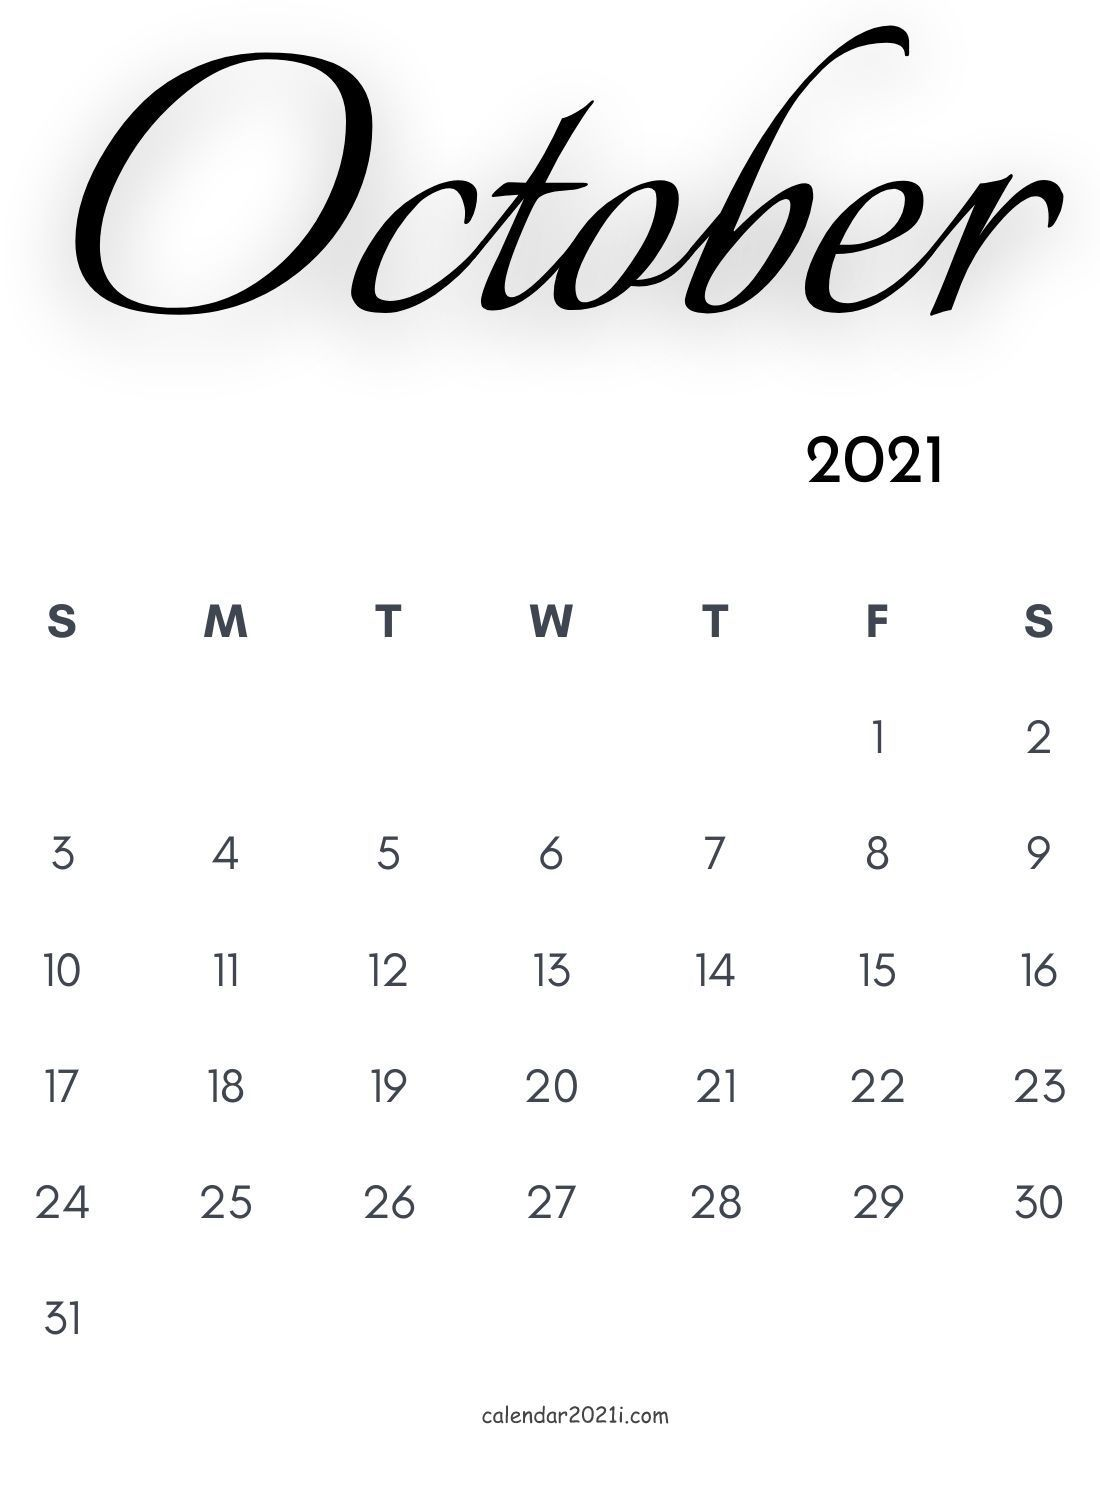 October 2021 Calligraphy Calendar Free Download In 2020 Monthly Calendar Printable Calligraphy Calendar Template Printable